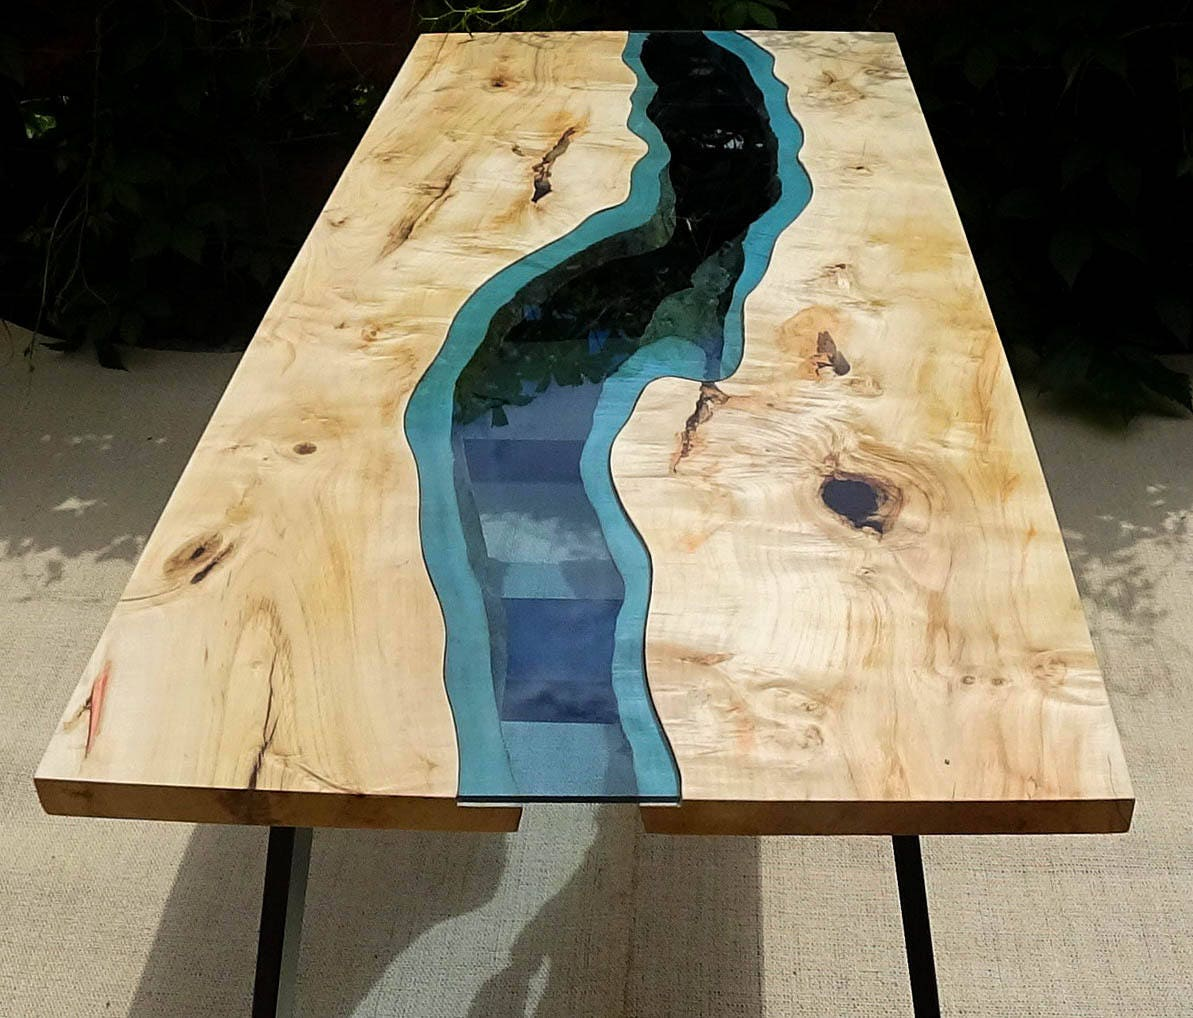 live rand fluss tisch mit mit epoxy inlay verkauft verkauft. Black Bedroom Furniture Sets. Home Design Ideas